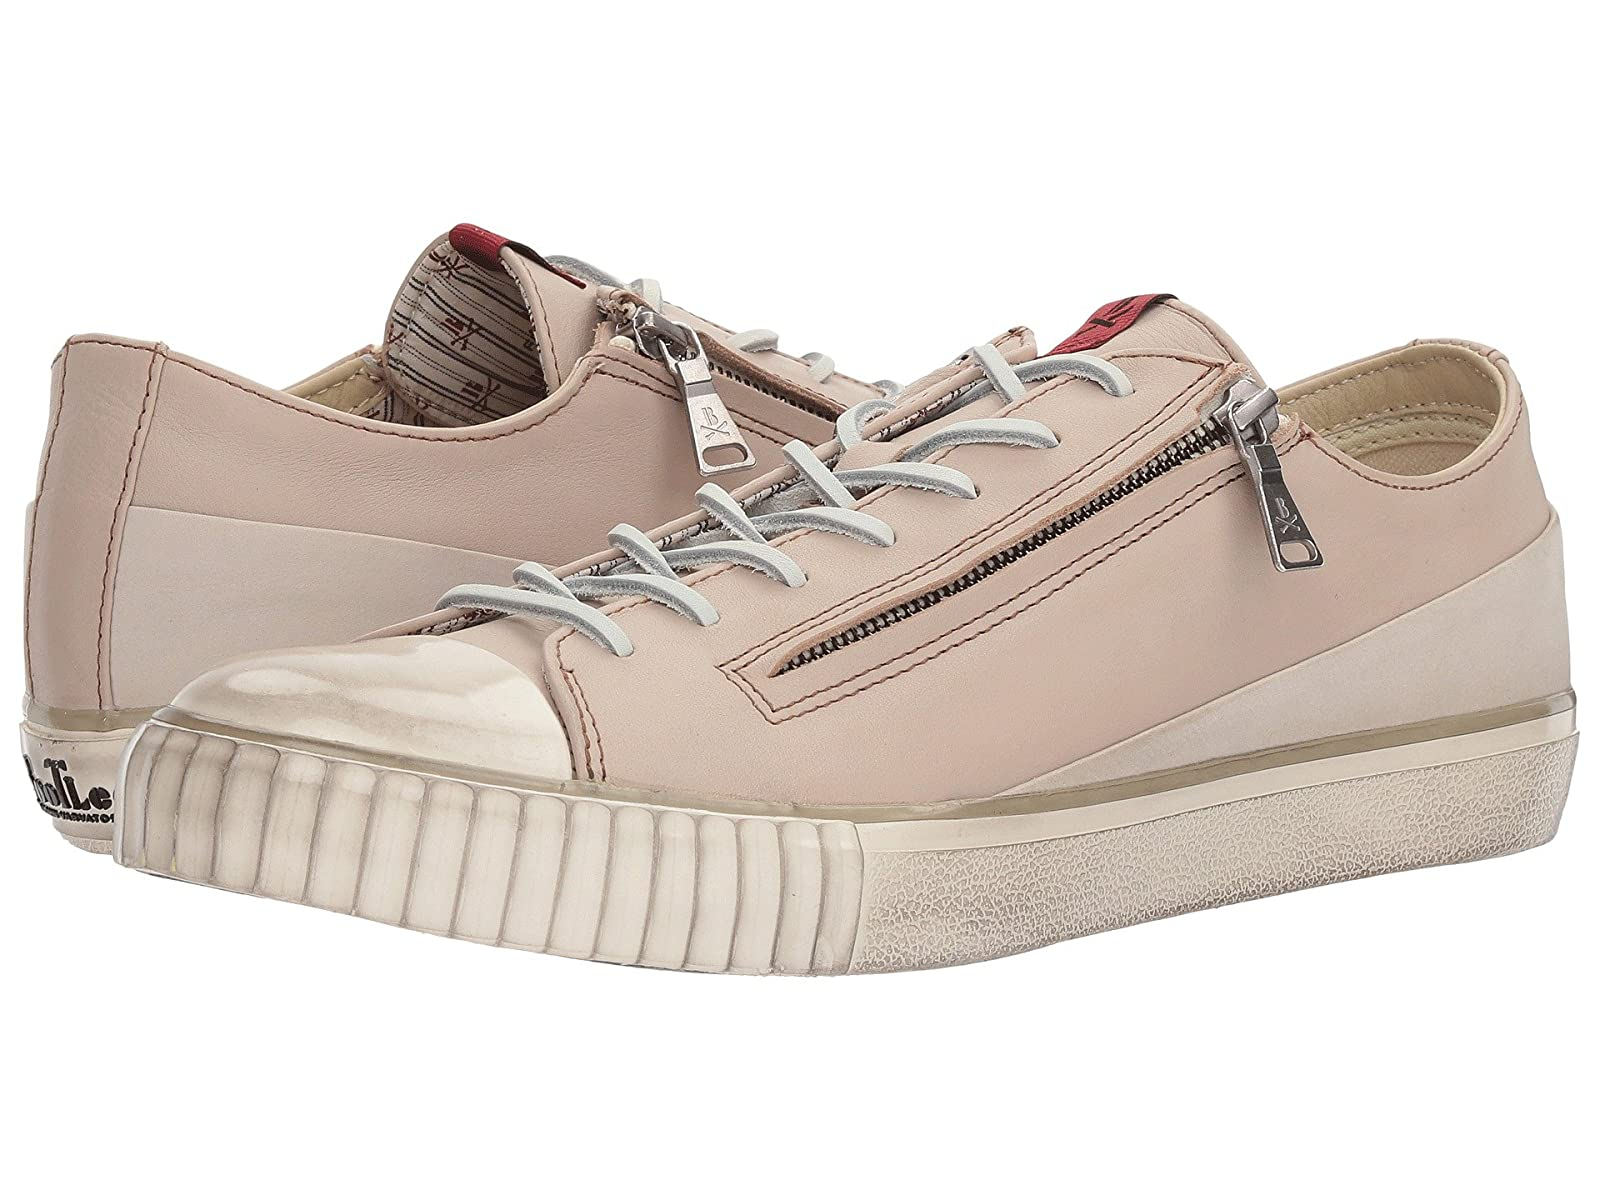 John Varvatos Double Zip Low TopAtmospheric grades have affordable shoes